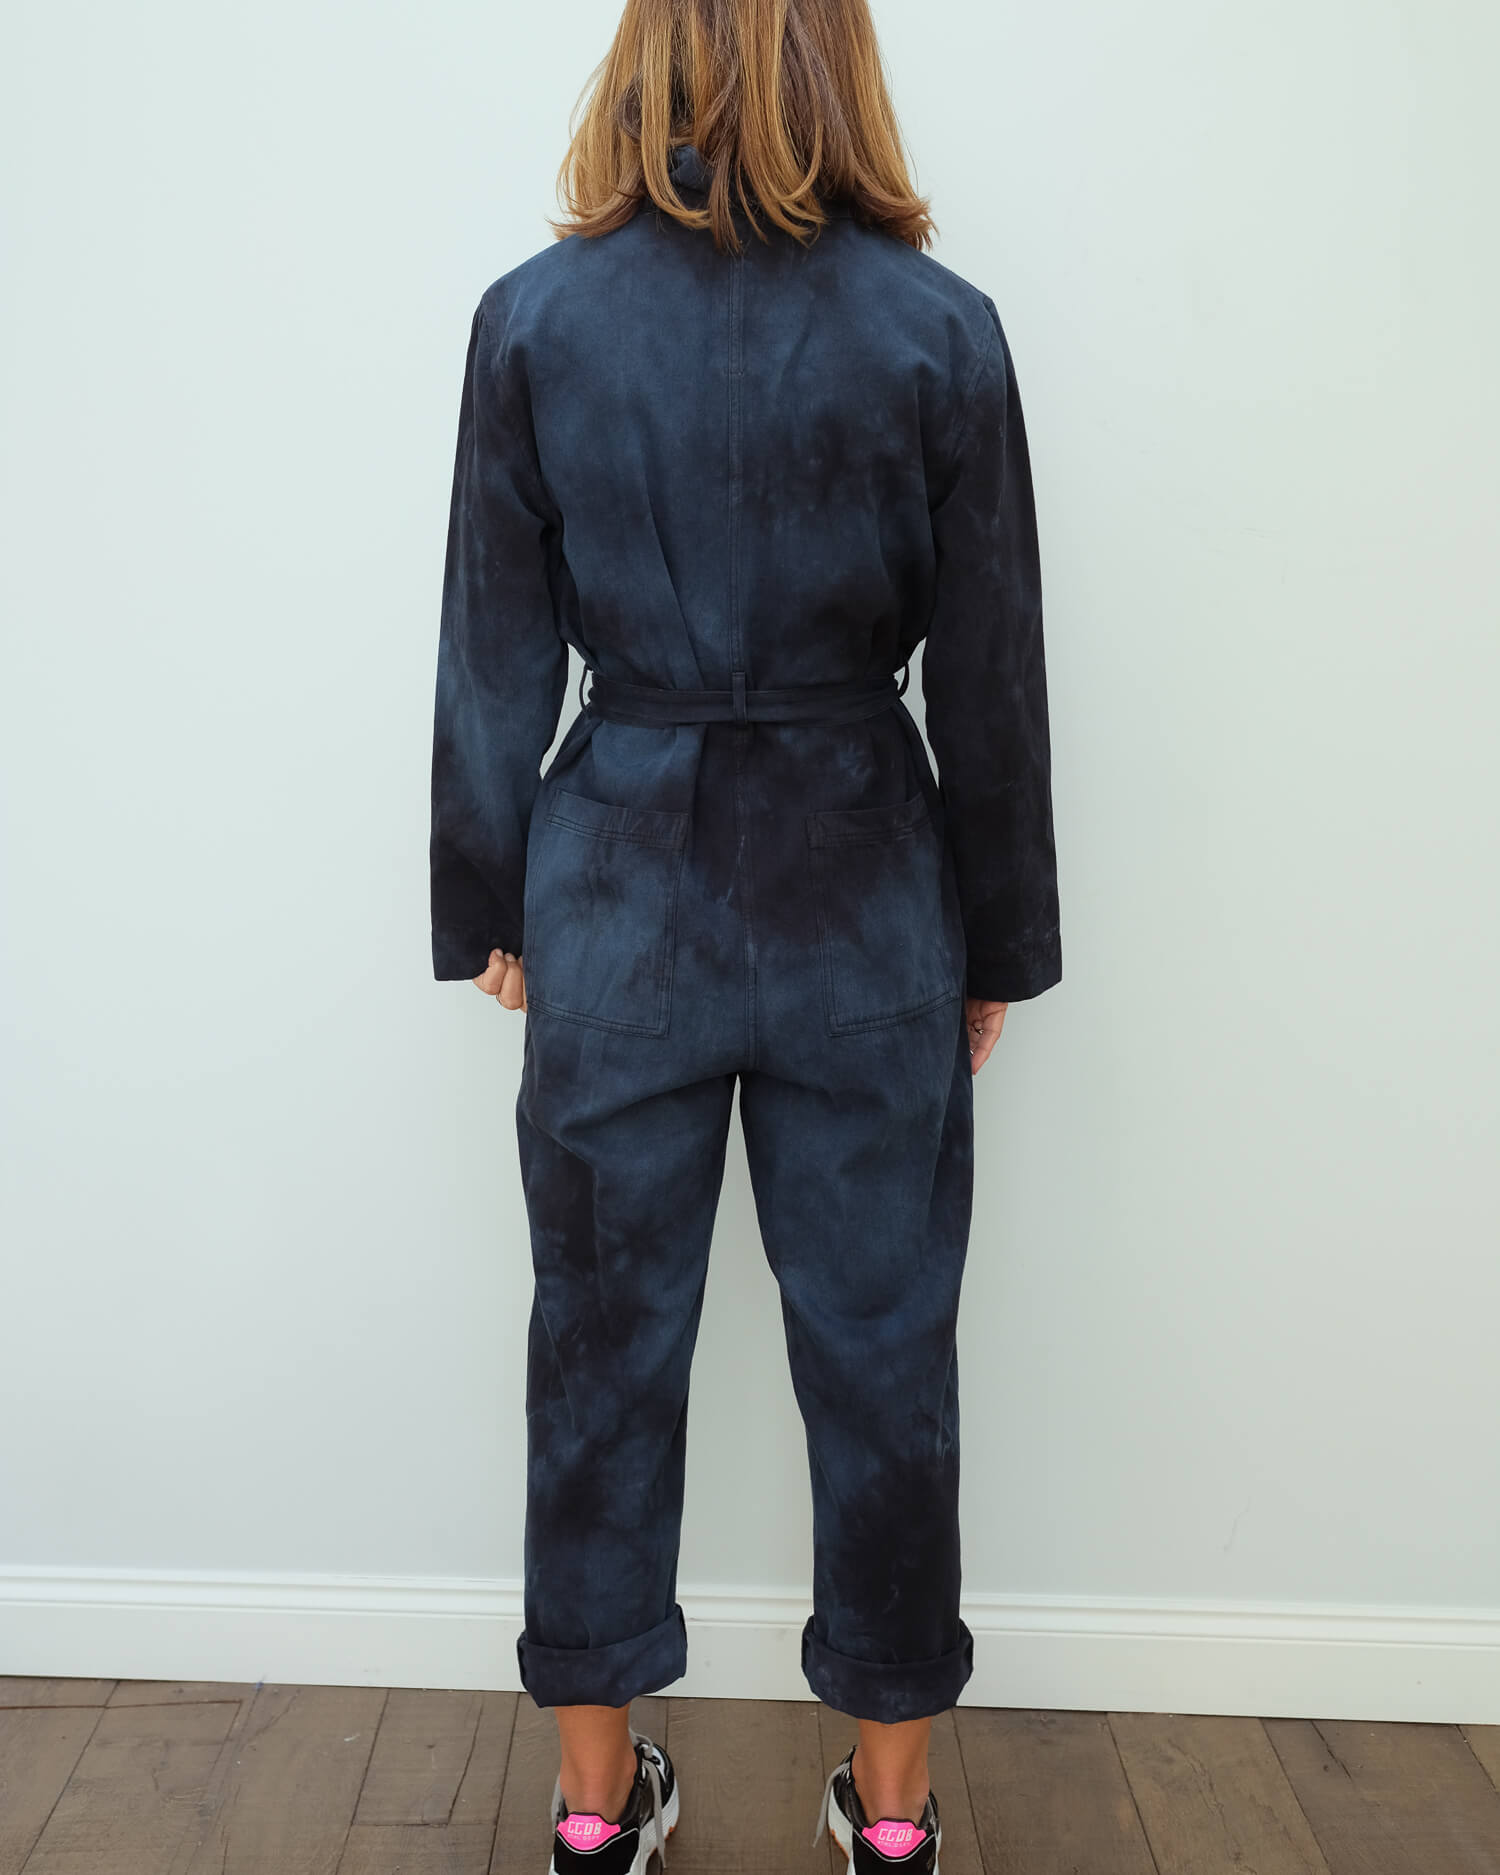 RA 8337 Coverall in dark indigo